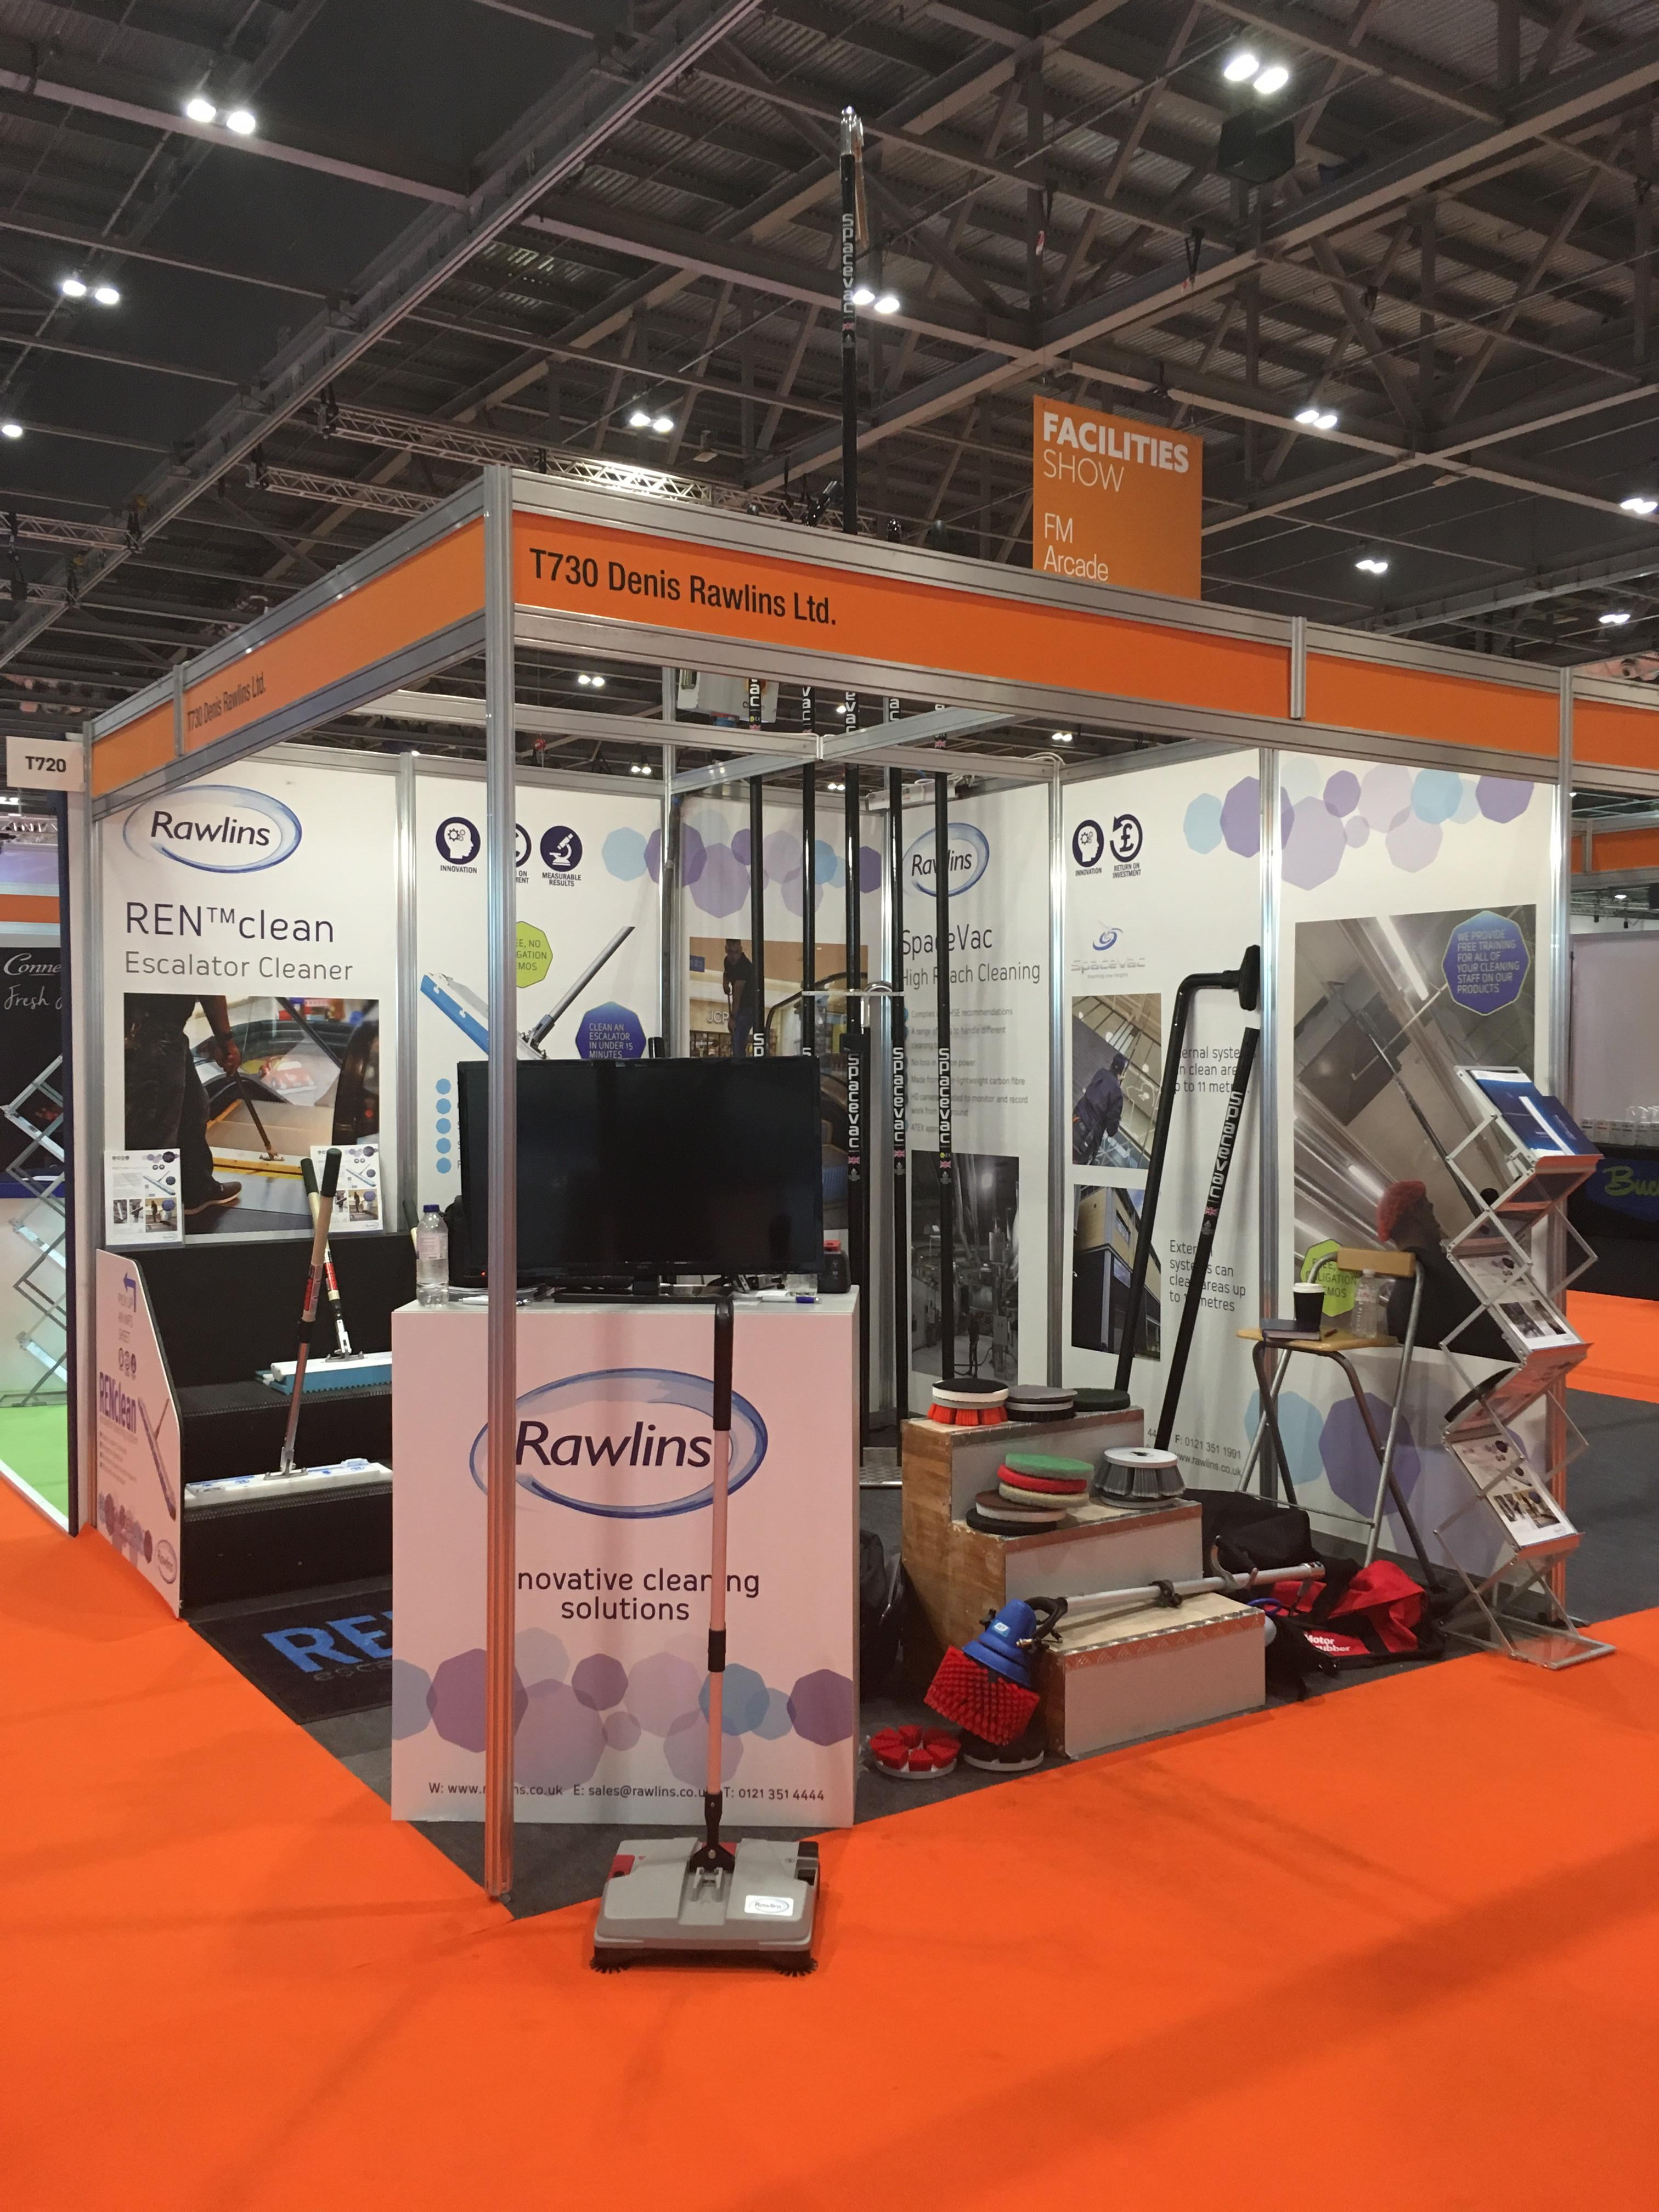 Facilities Show Stand